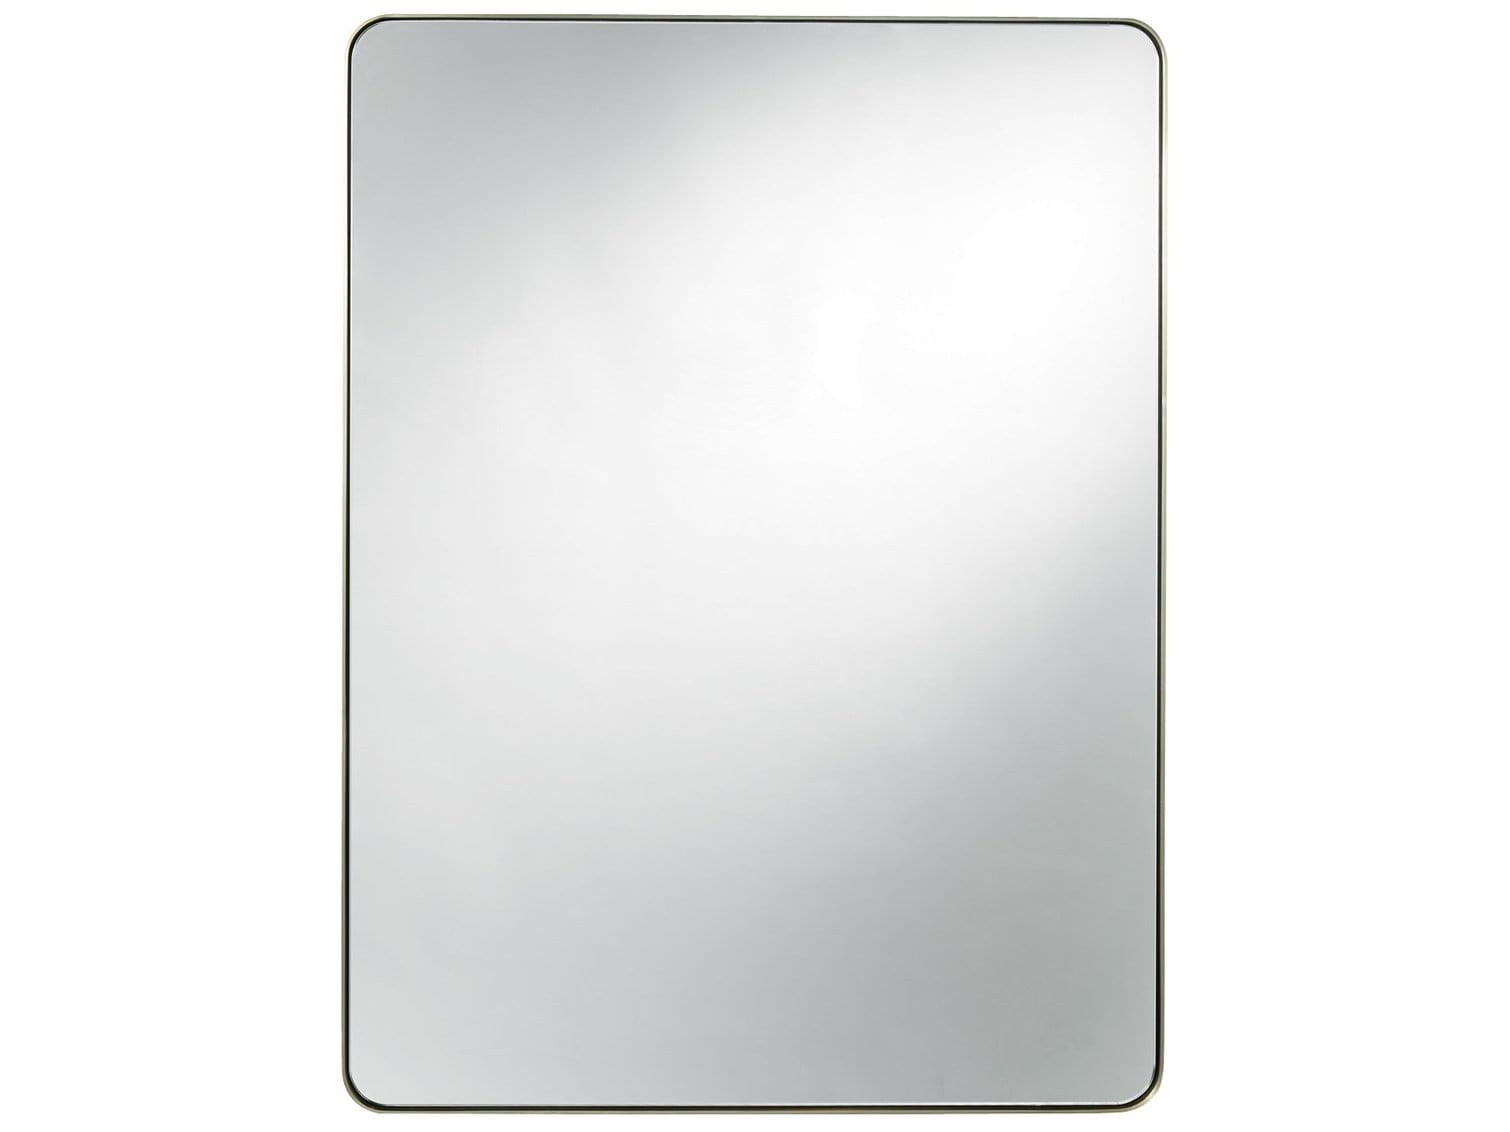 Alchemy Living Alchemy Living Stile Olivia Accent Mirror - Brown 656A05M